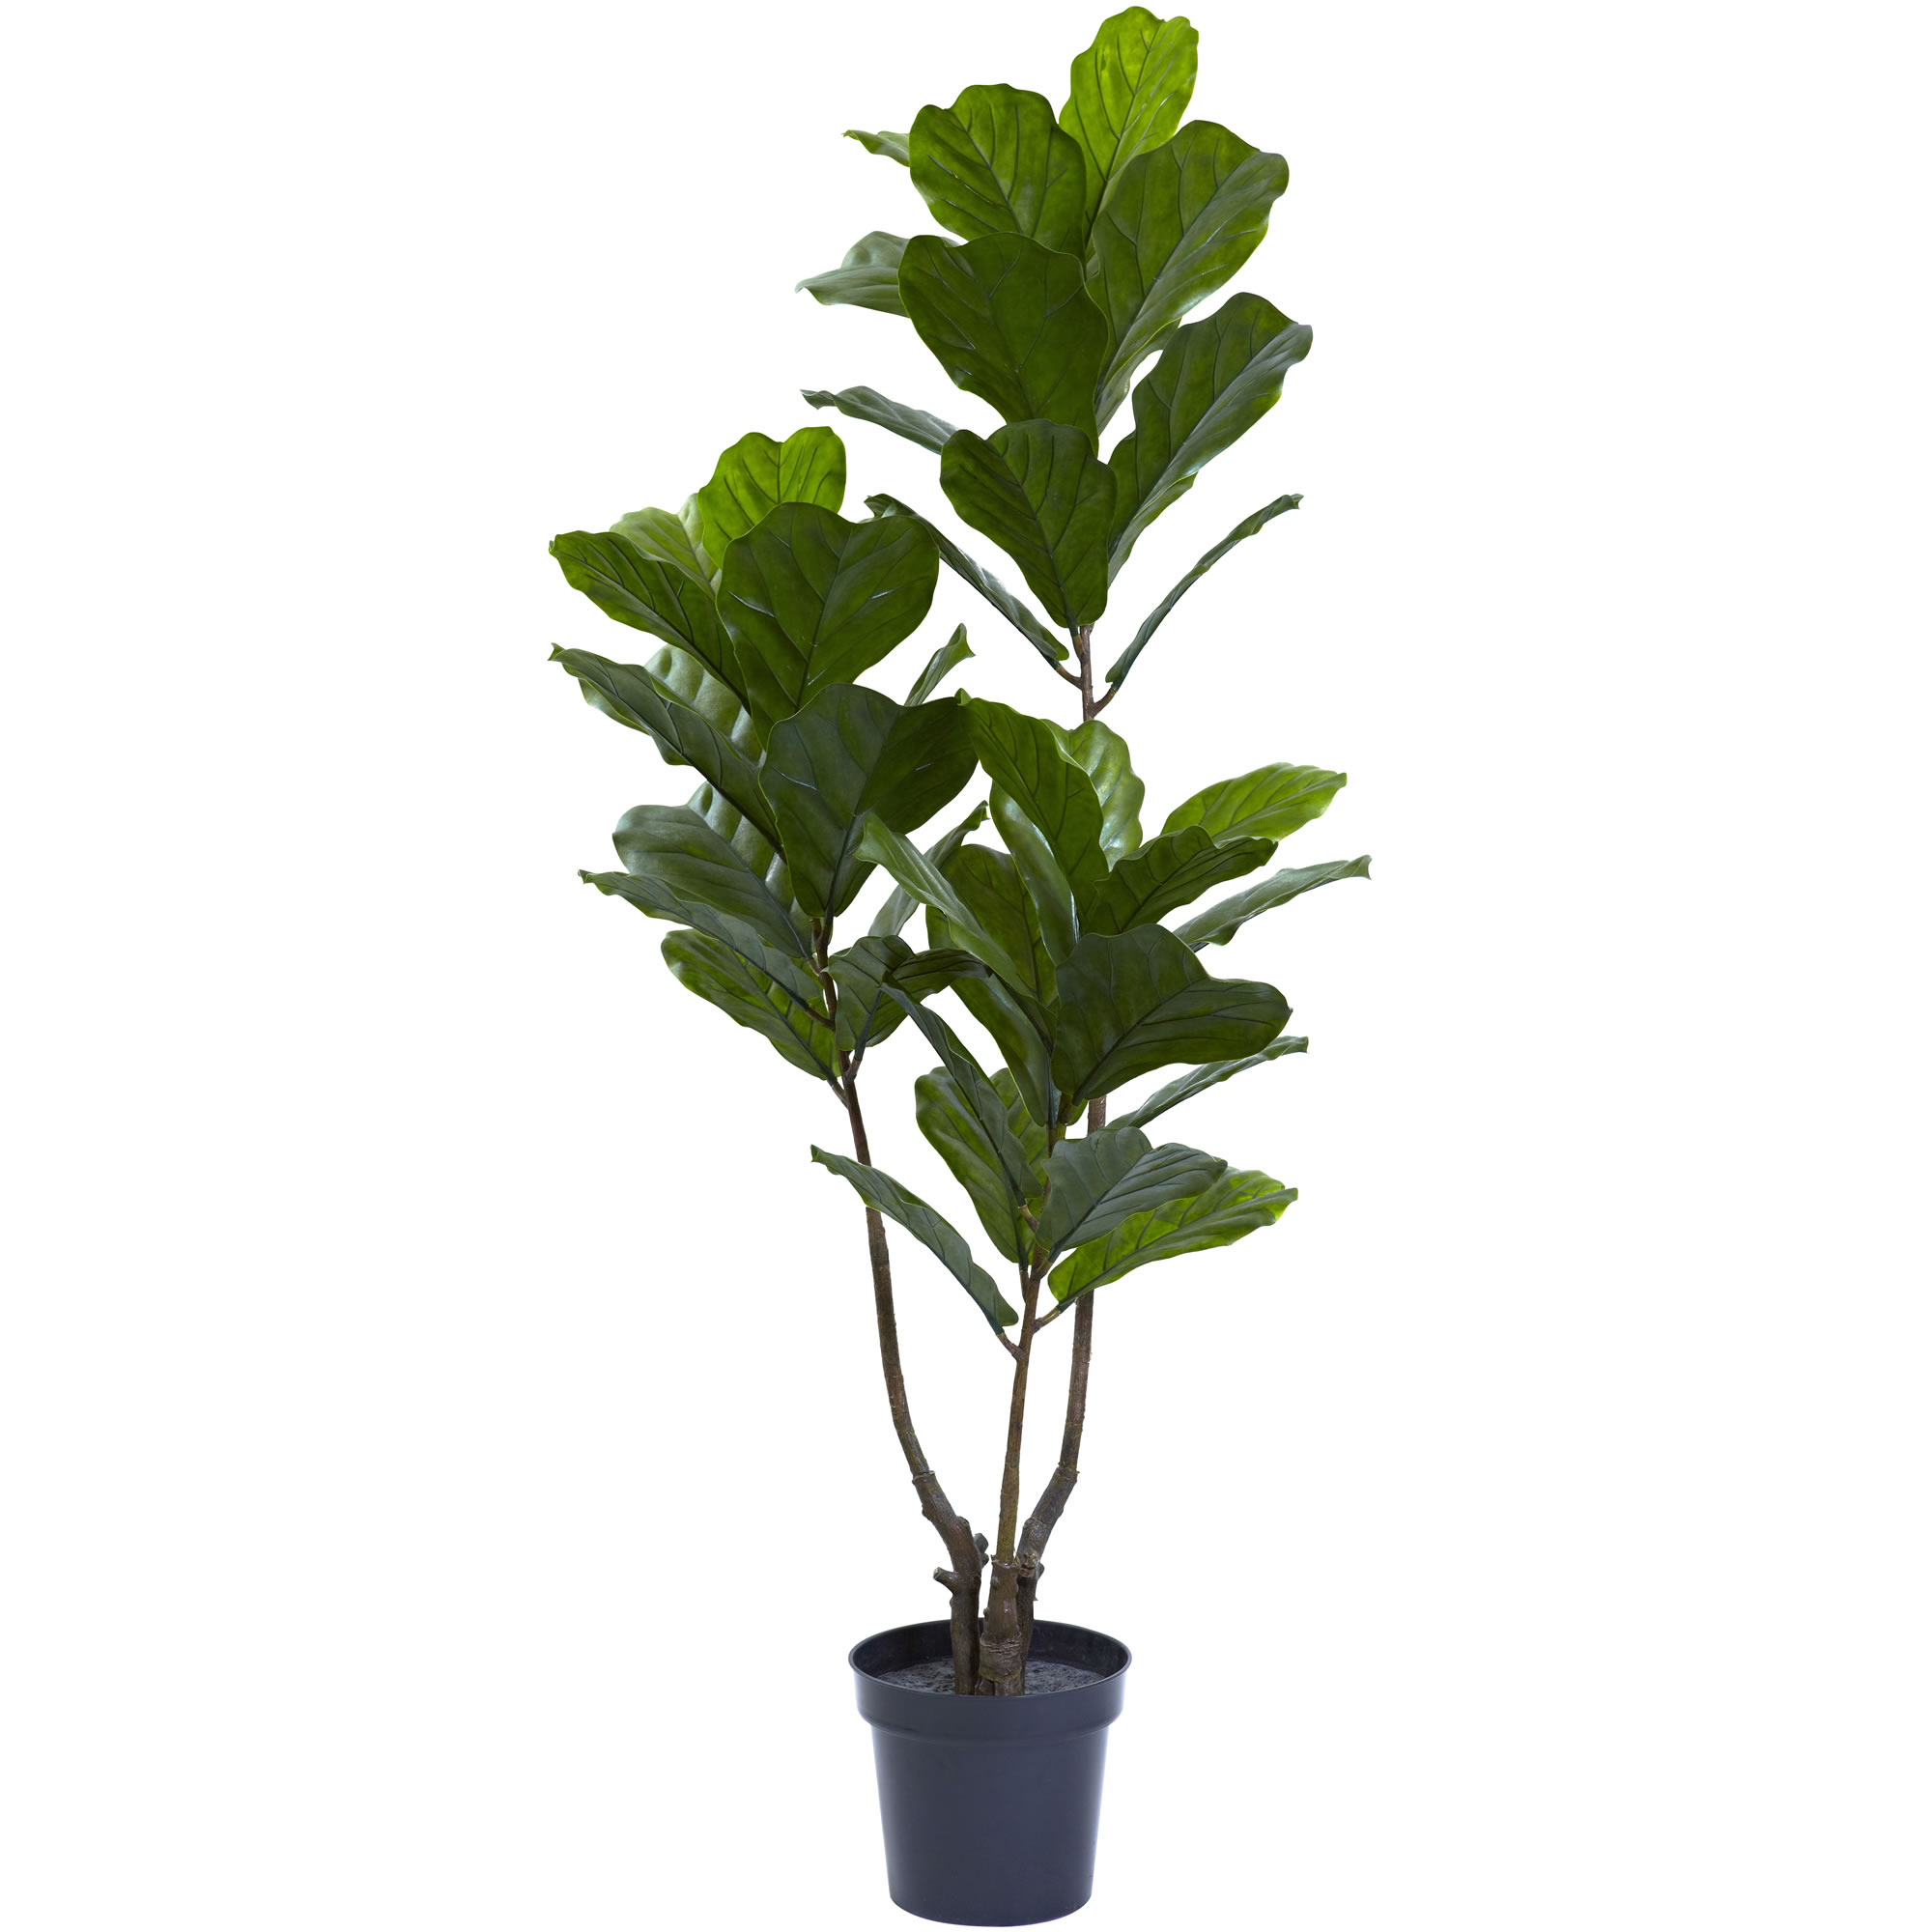 5 5 Quot Uv Resistant Outdoor Artificial Fiddle Leaf Tree W